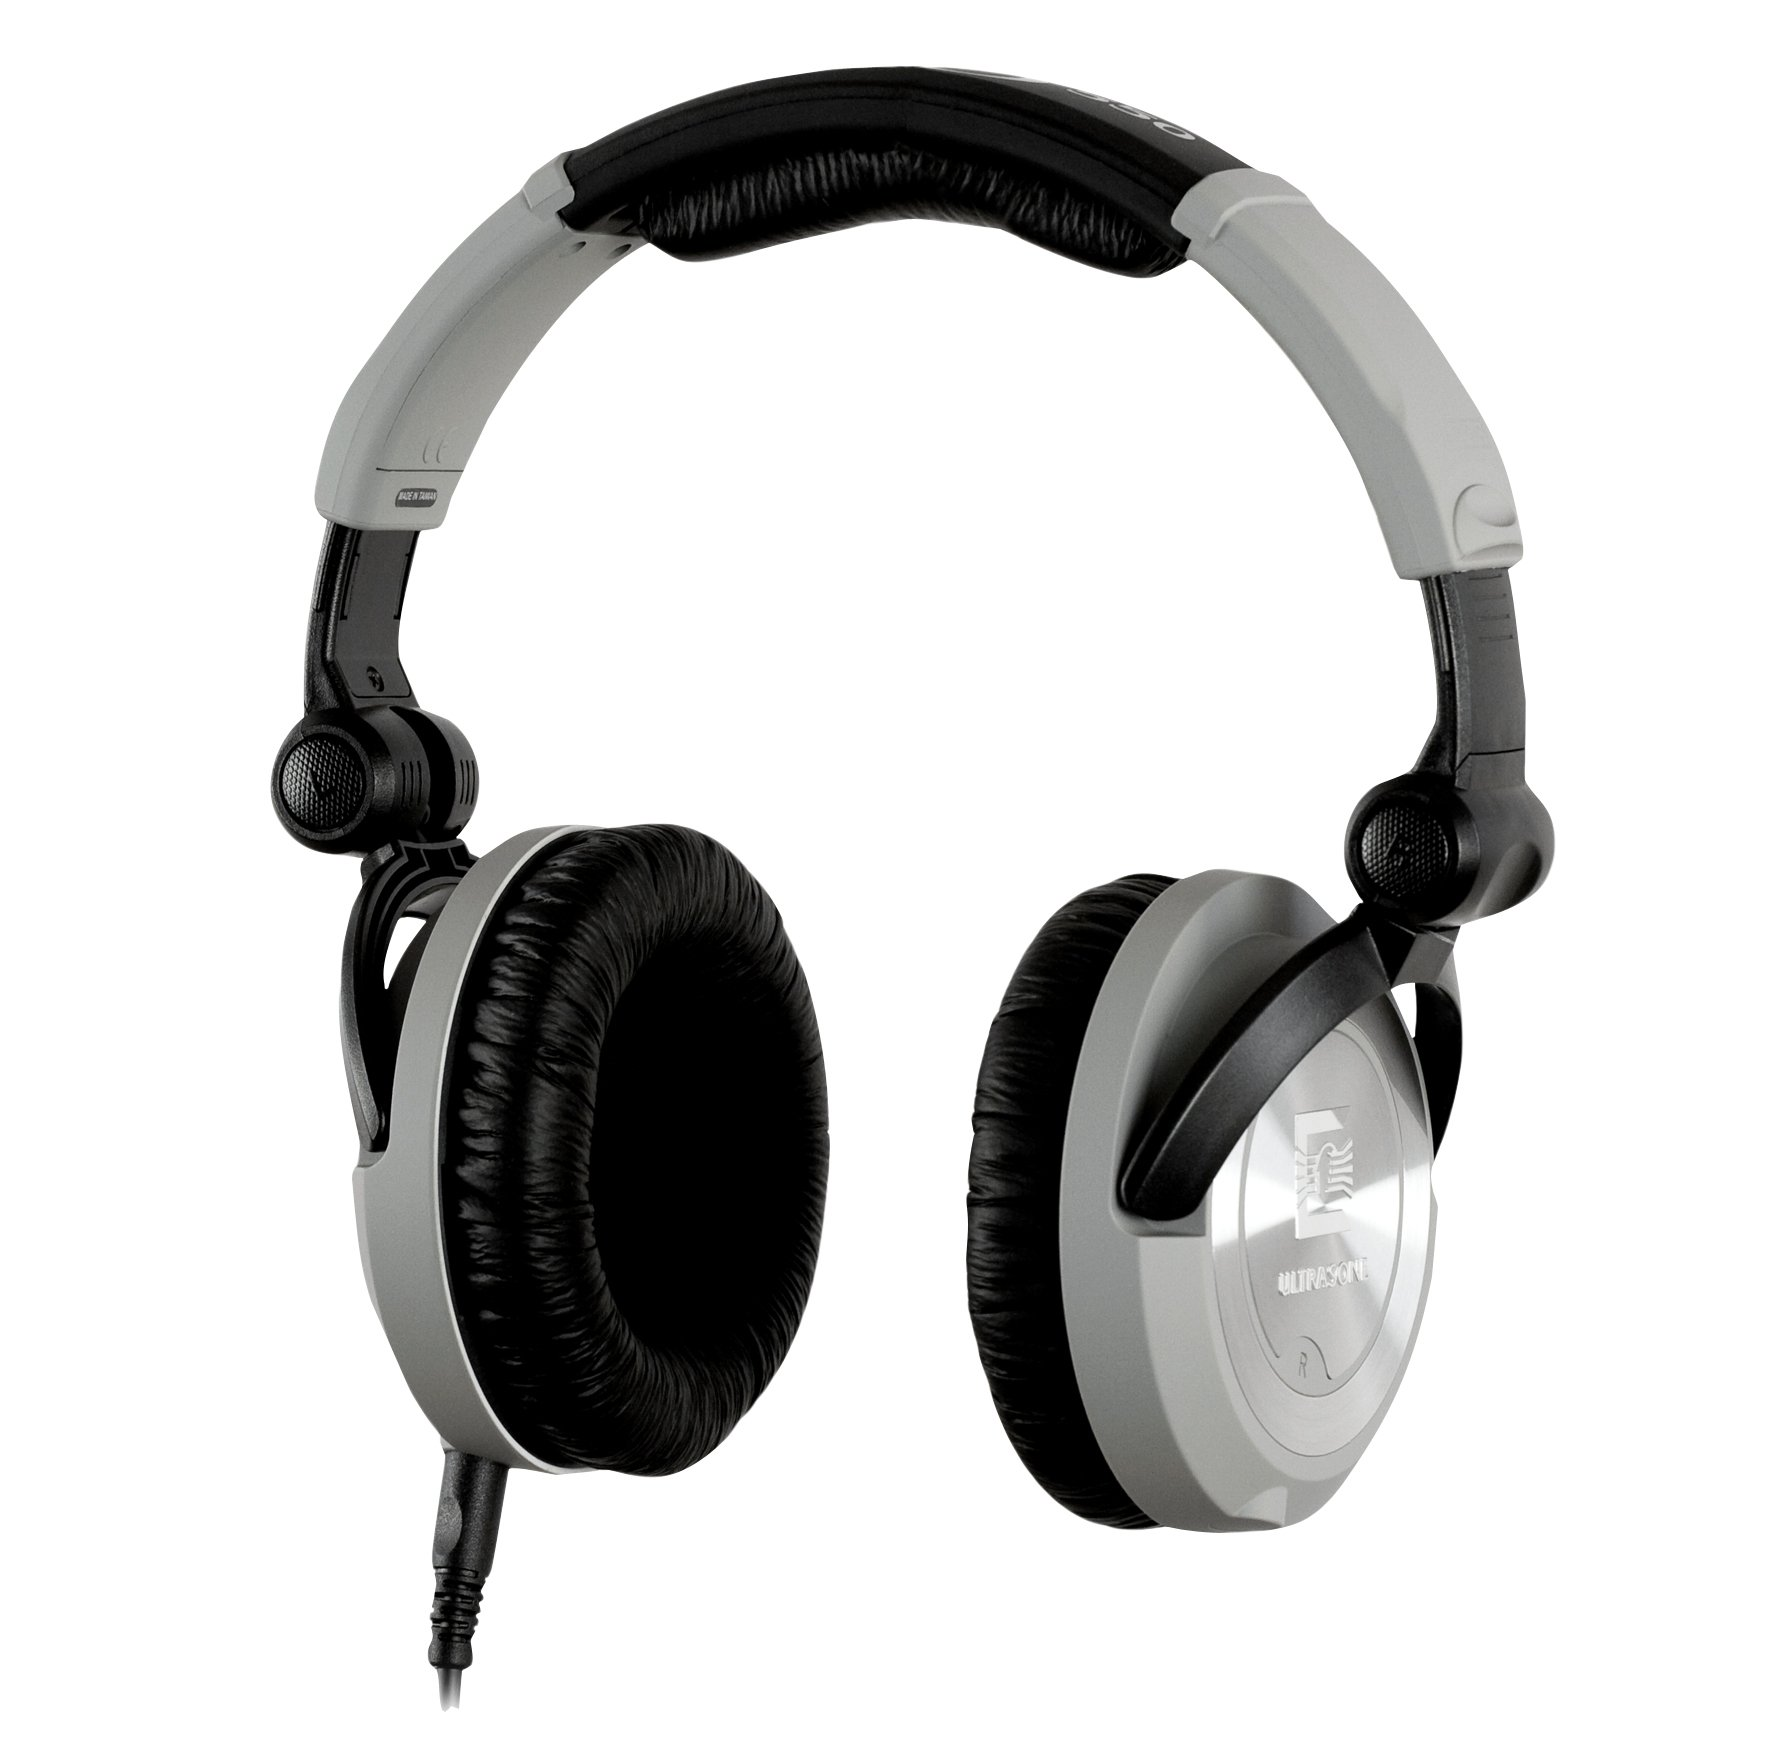 Ultrasone PRO 550 S-Logic Surround Sound Professional Closed-back Headphones with Transport Box by Ultrasone